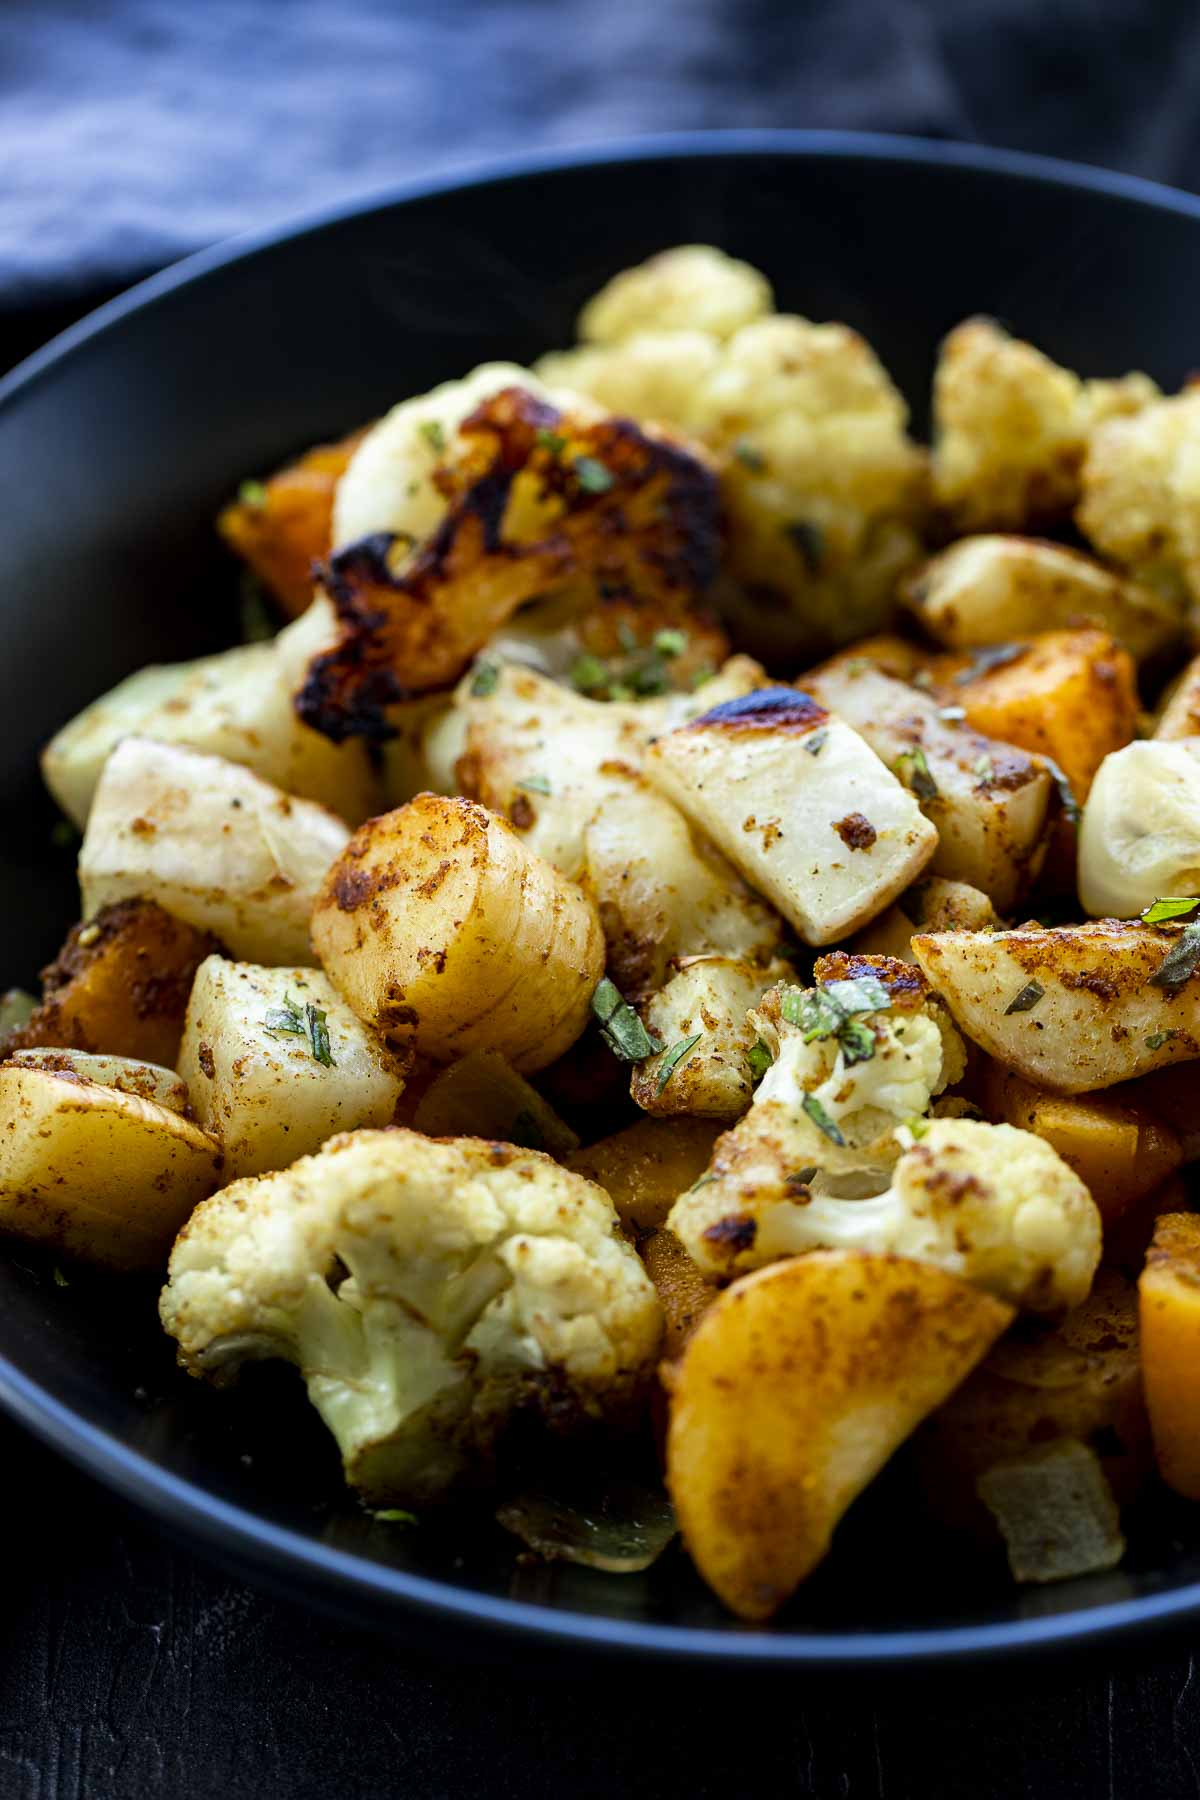 roasted cauliflower, pumpkin and parsnips in a bowl